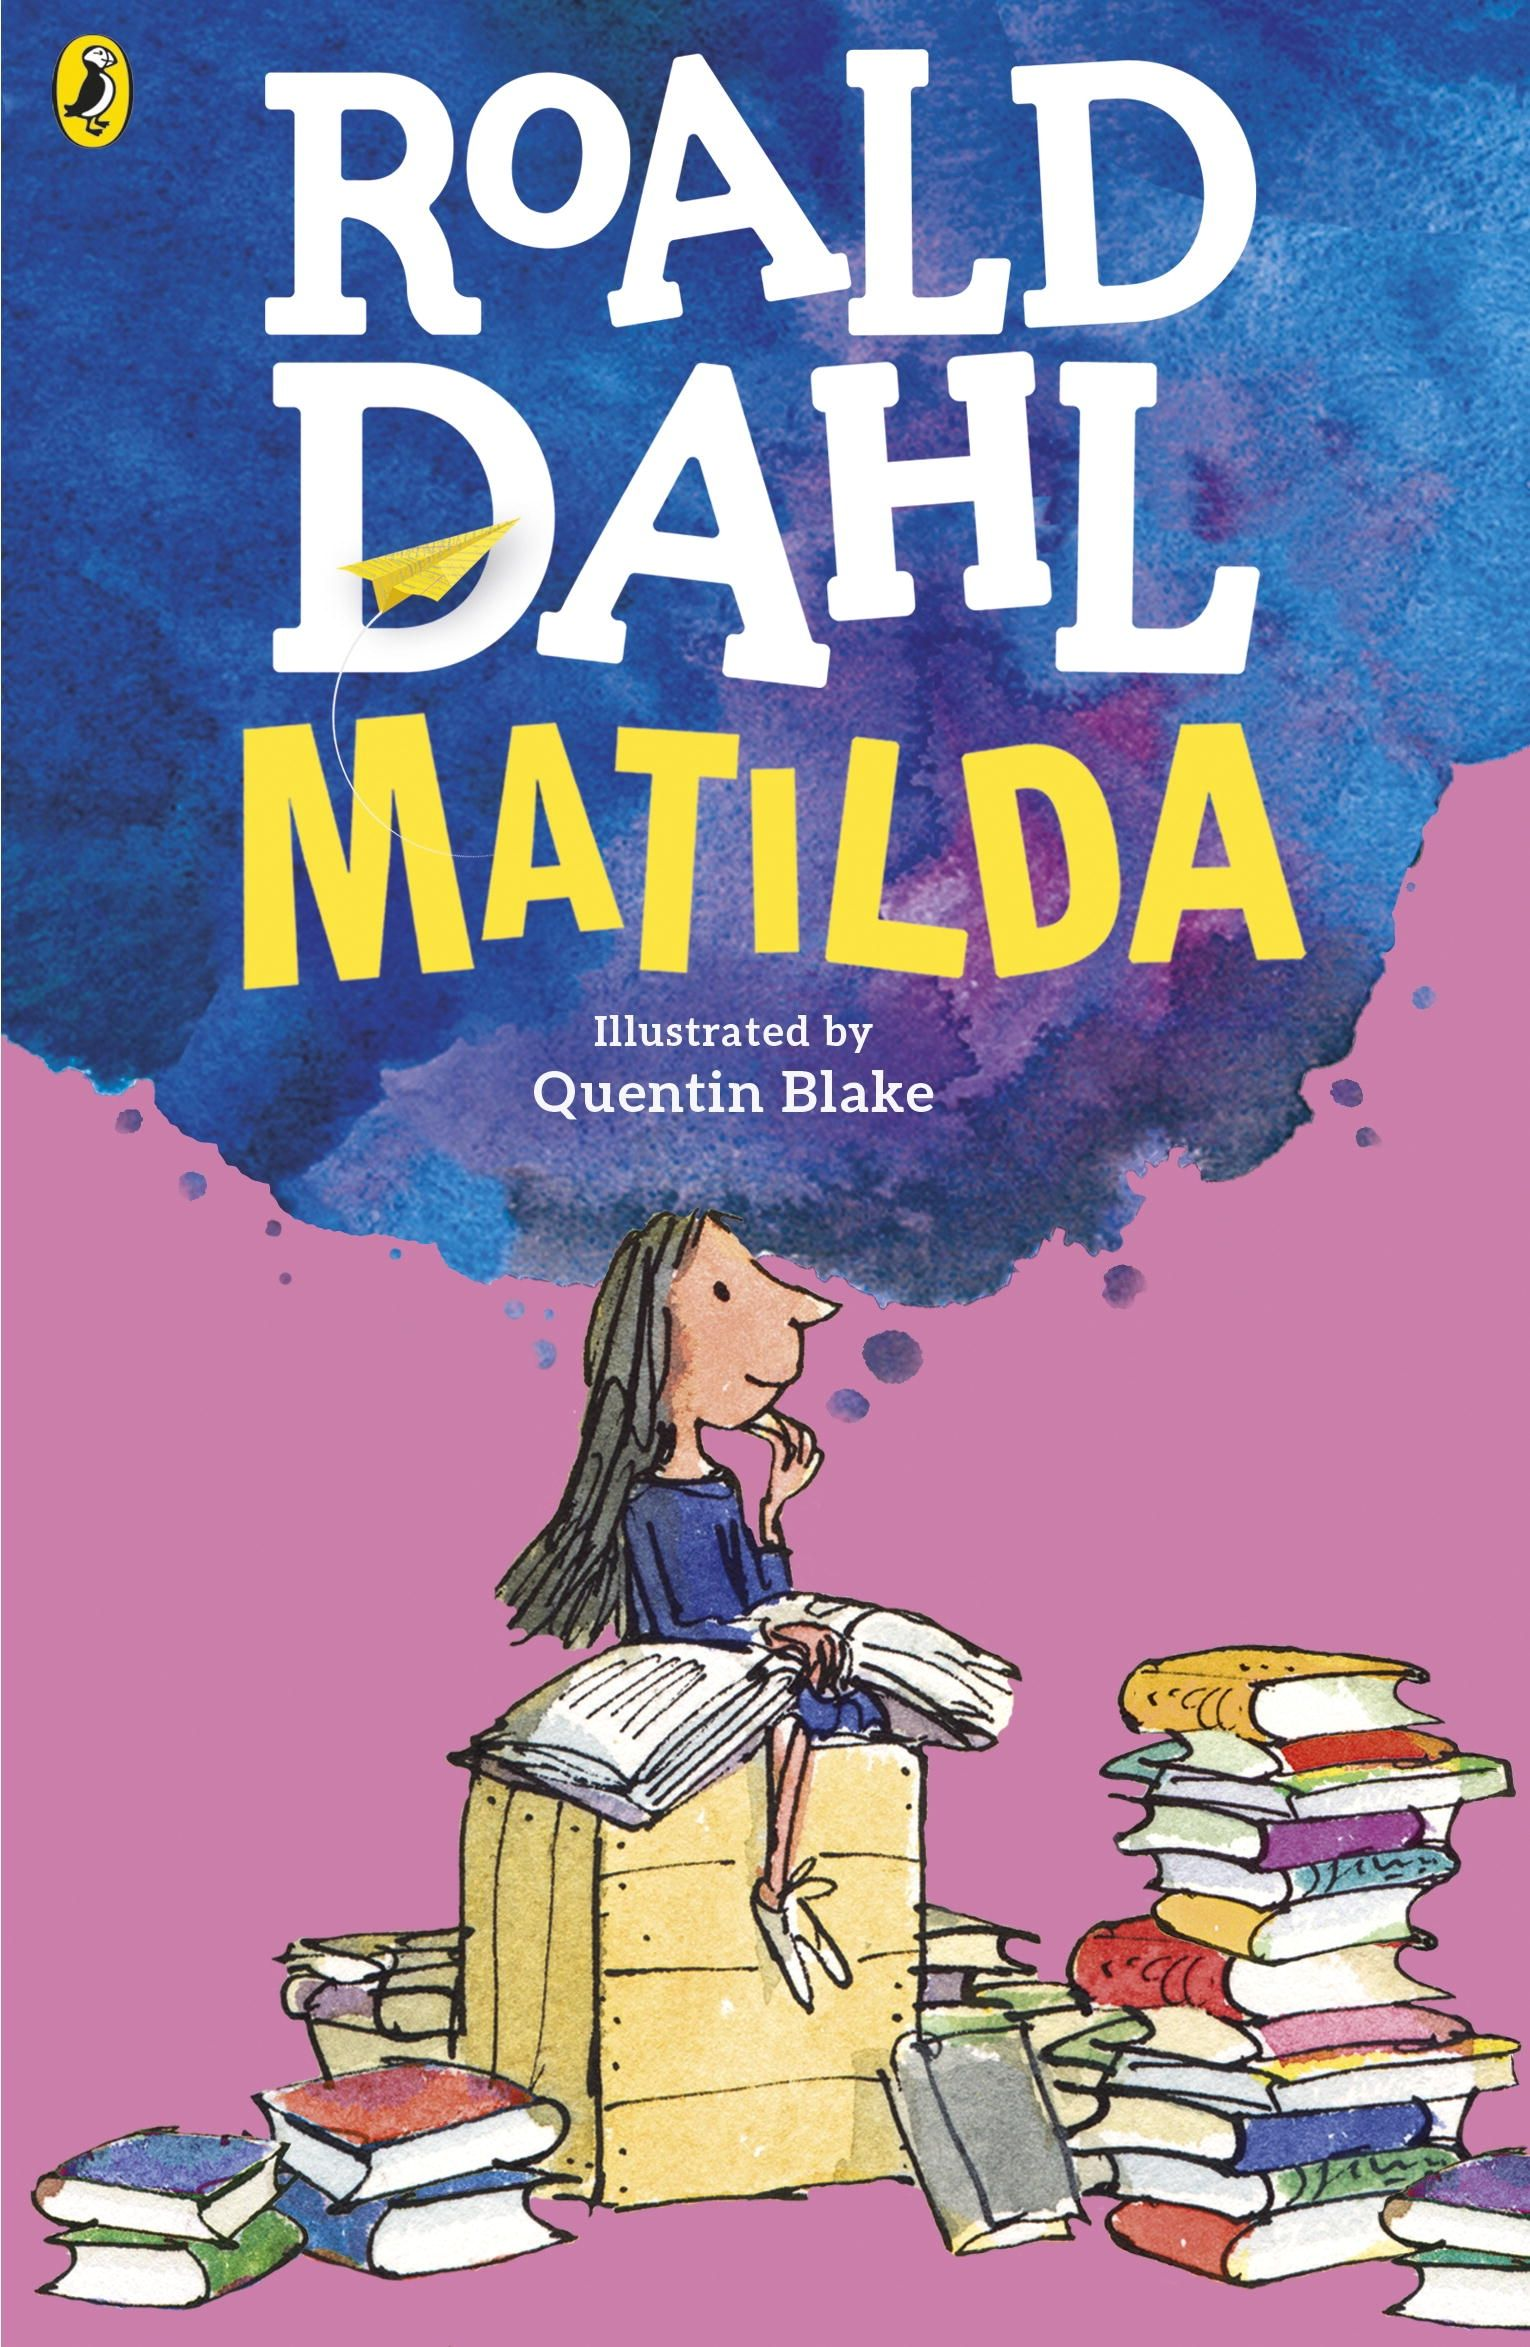 Roald dahl day matilda by roald dahl quentin blake pinterest matilda by roald dahl quentin blake story snug fandeluxe Image collections